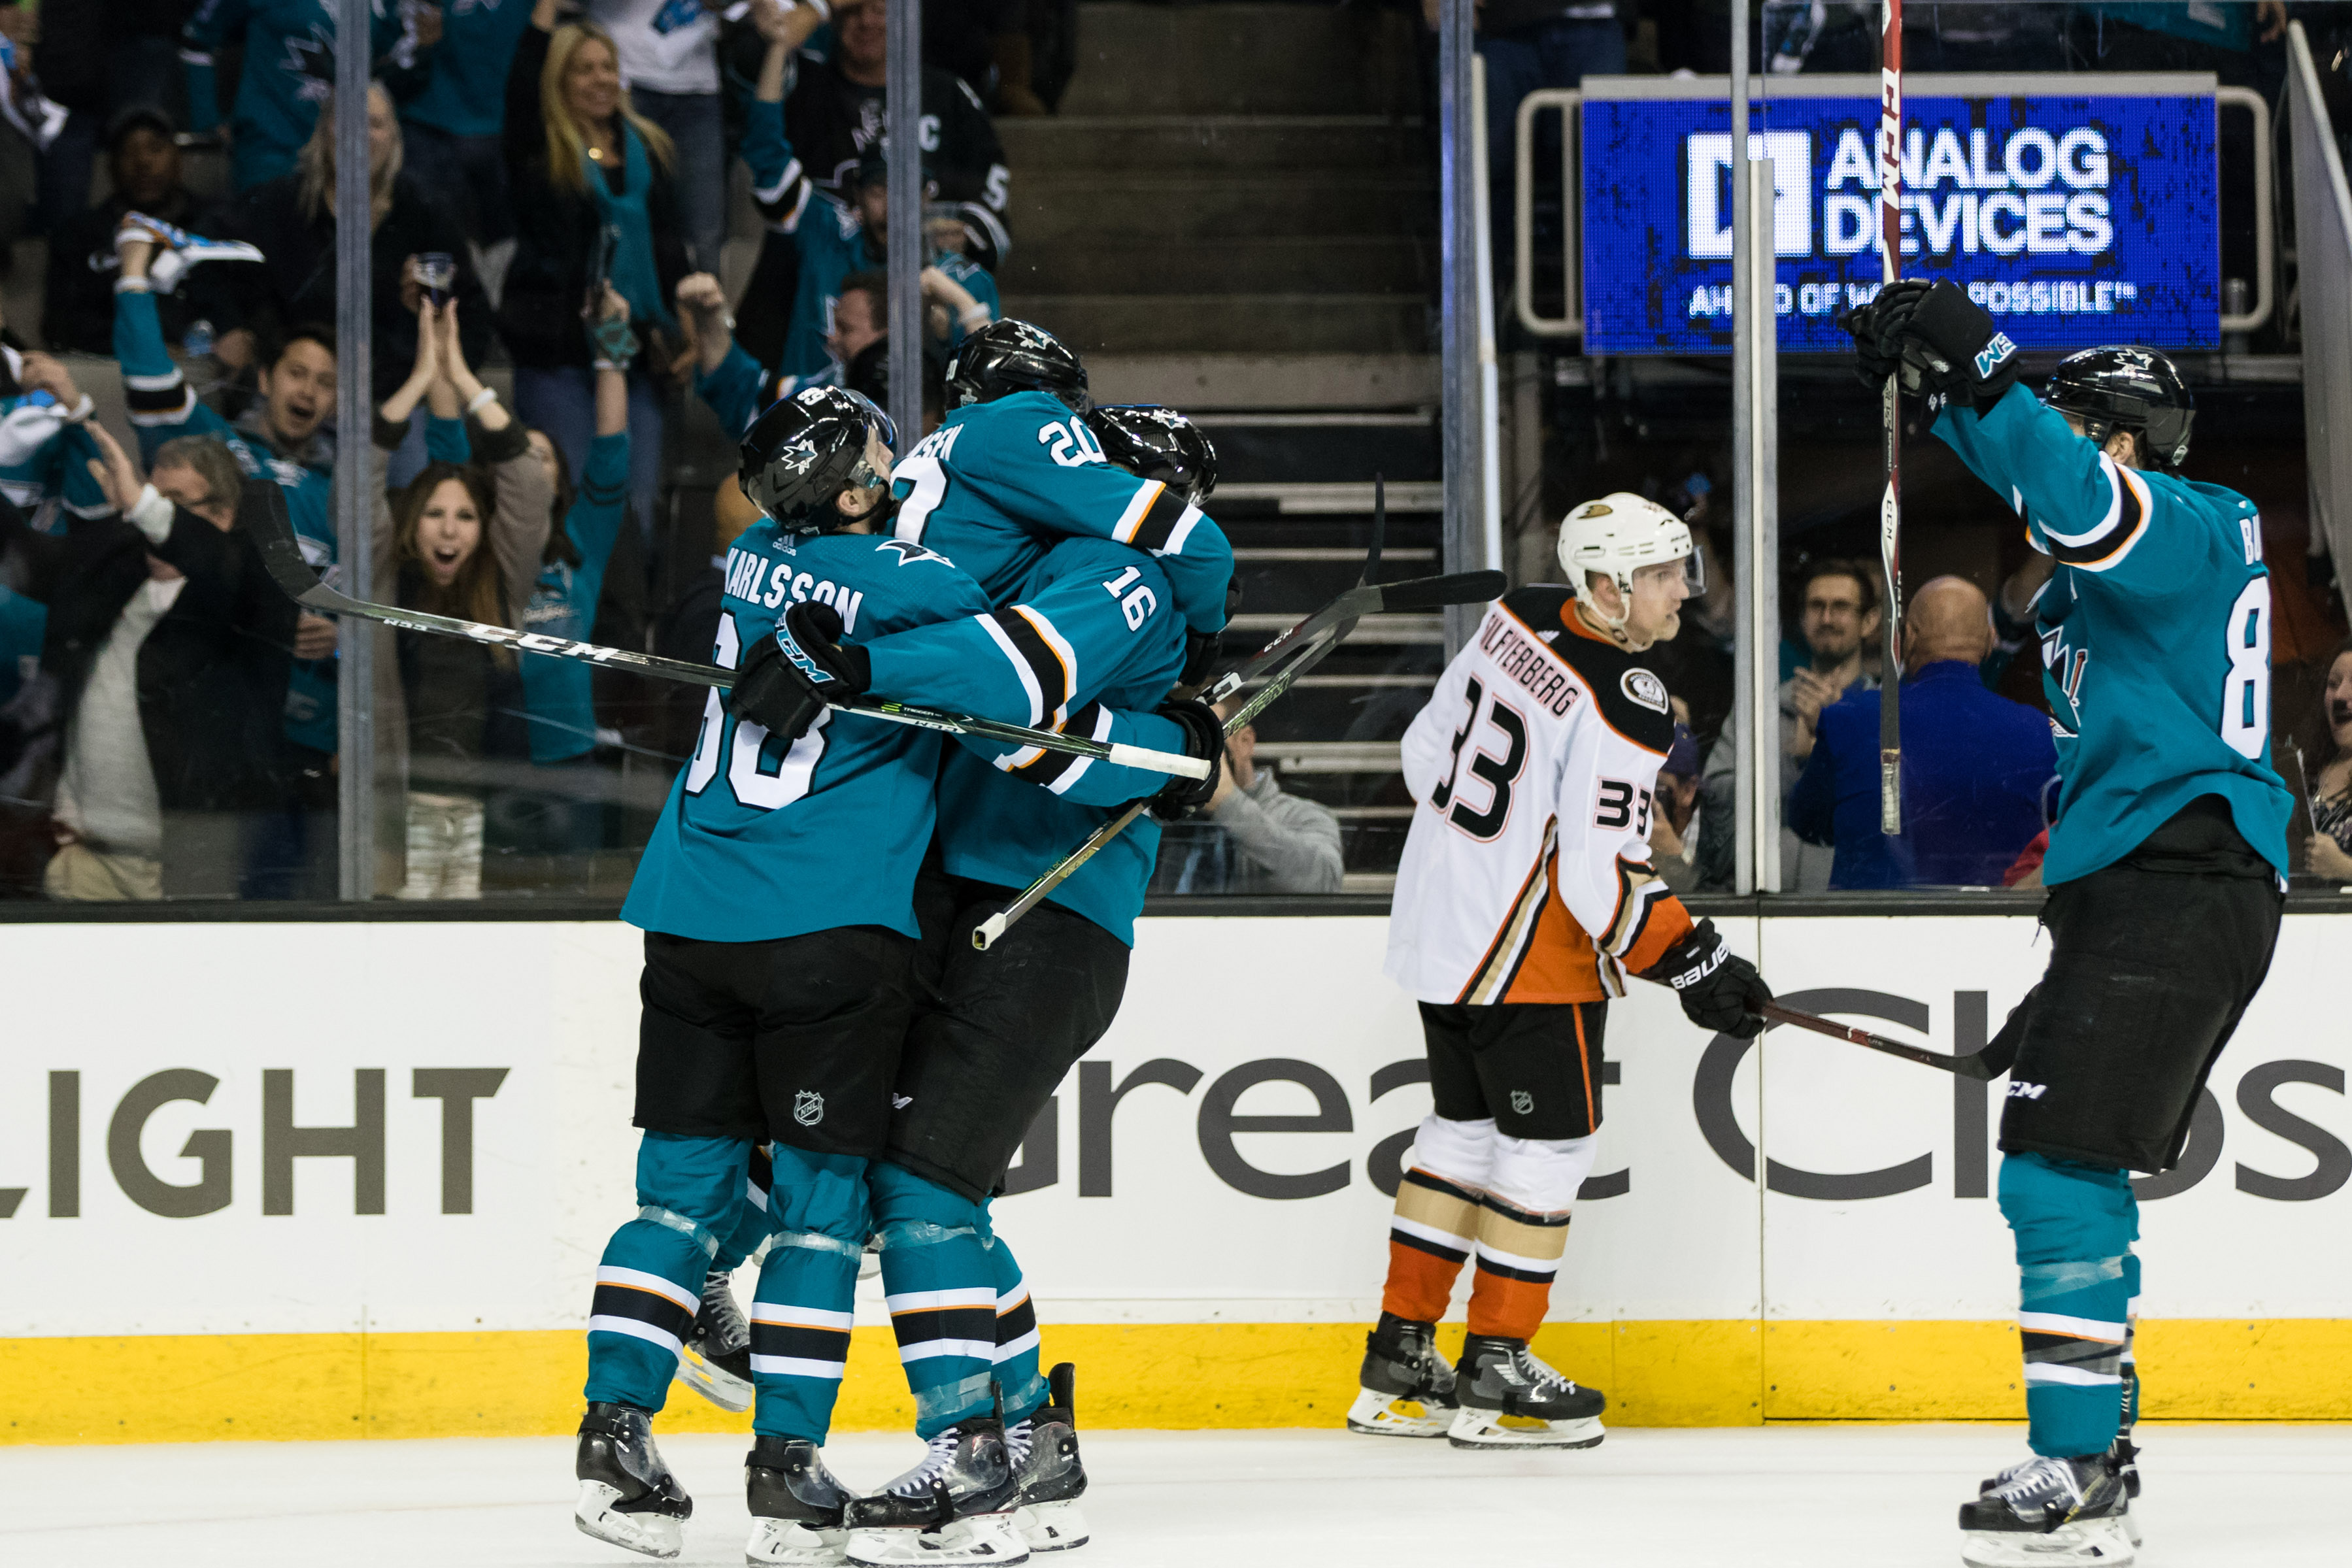 Apr 16, 2018; San Jose, CA, USA; San Jose Sharks center Eric Fehr (16)  celebrates after scoring a goal against the Anaheim Ducks in the second  period of game three of the first round of the 2018 Stanley Cup Playoffs  at SAP Center at San Jose.